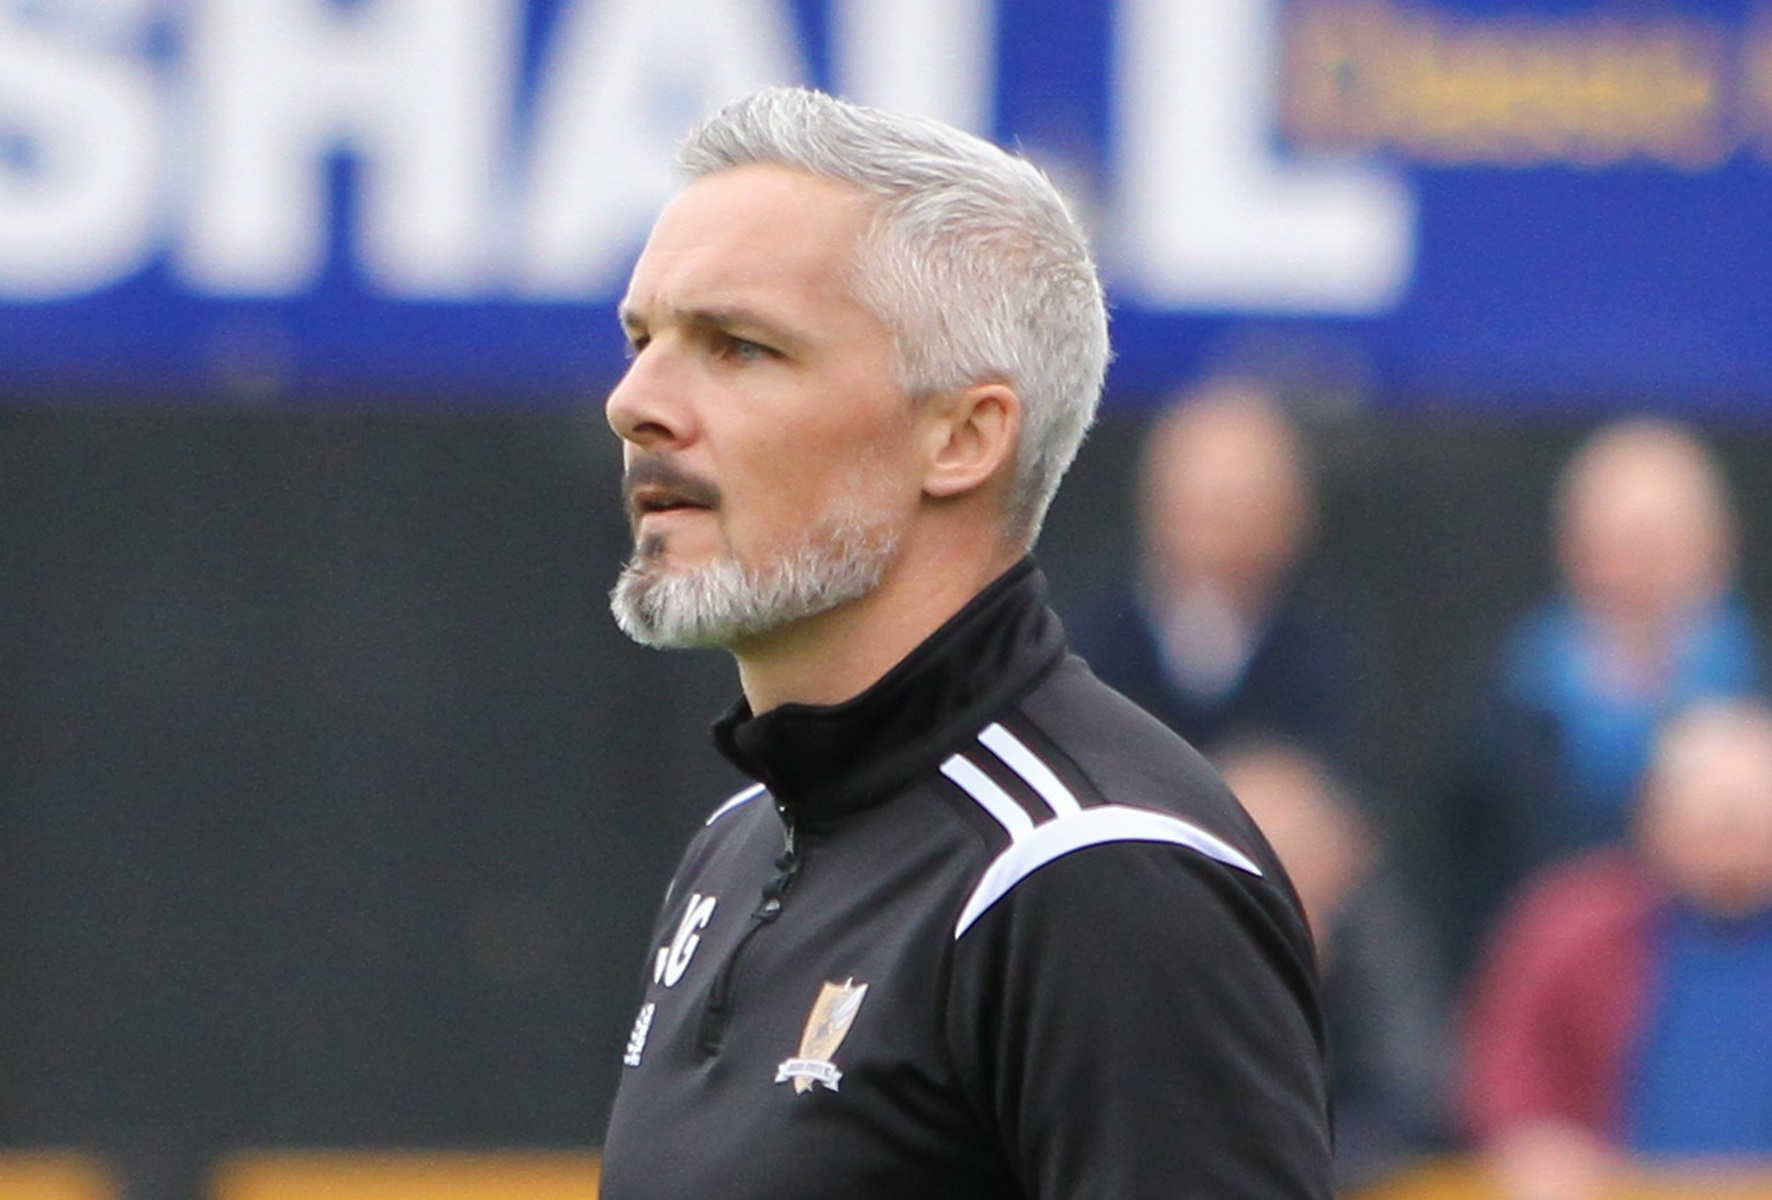 FRUSTRATED: Alloa boss Jim Goodwin feels his side should have taken all three points against Dundee United. Picture by John Howie